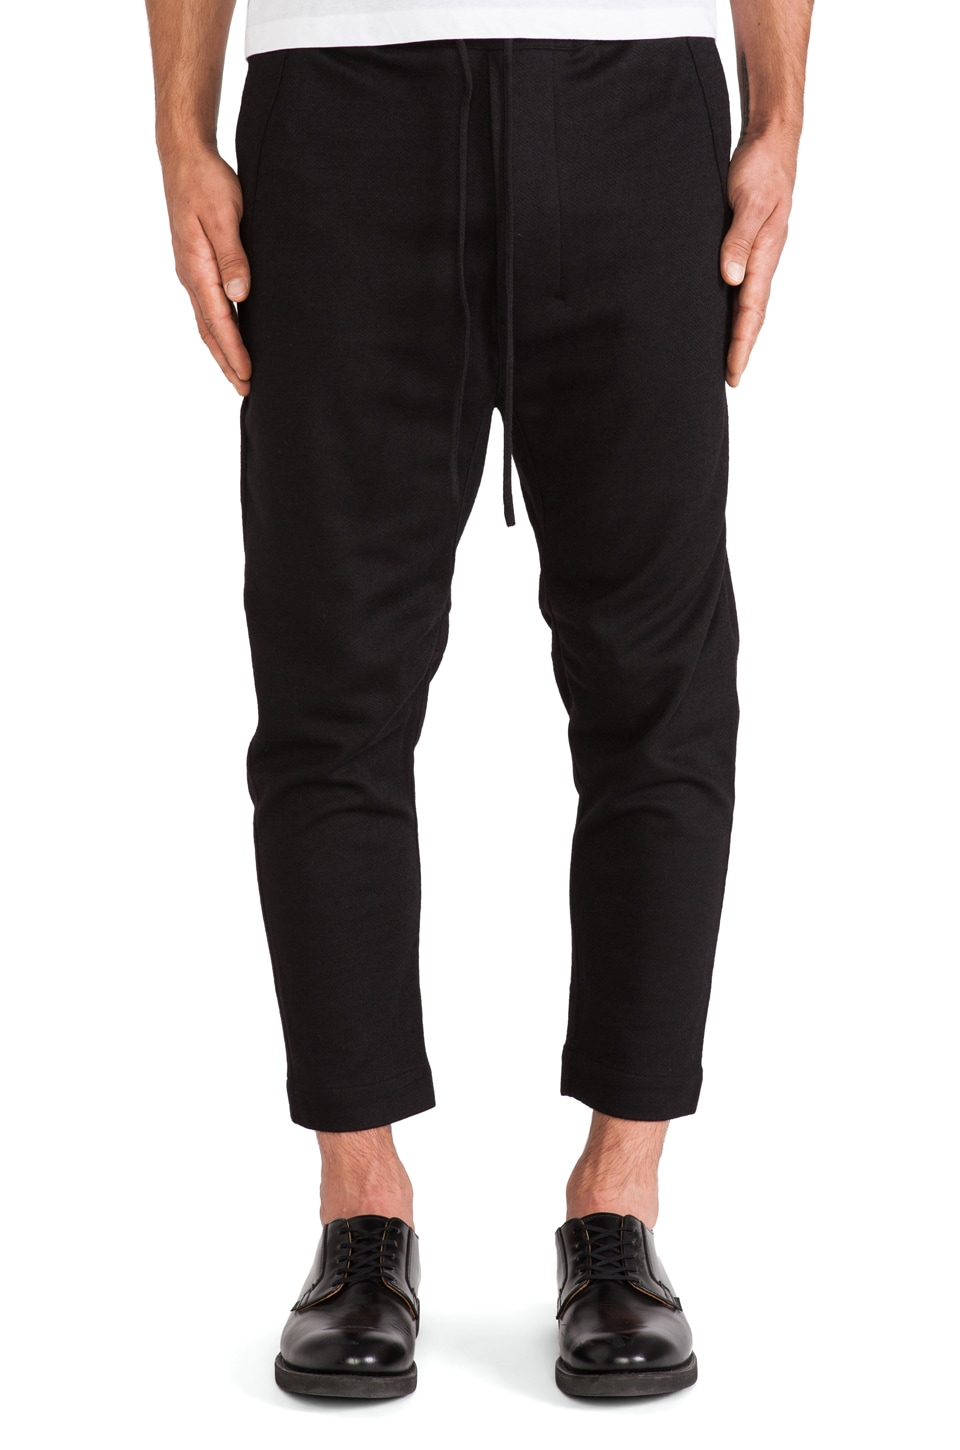 CHAPTER Baron Elastic Slouch Pant in Black